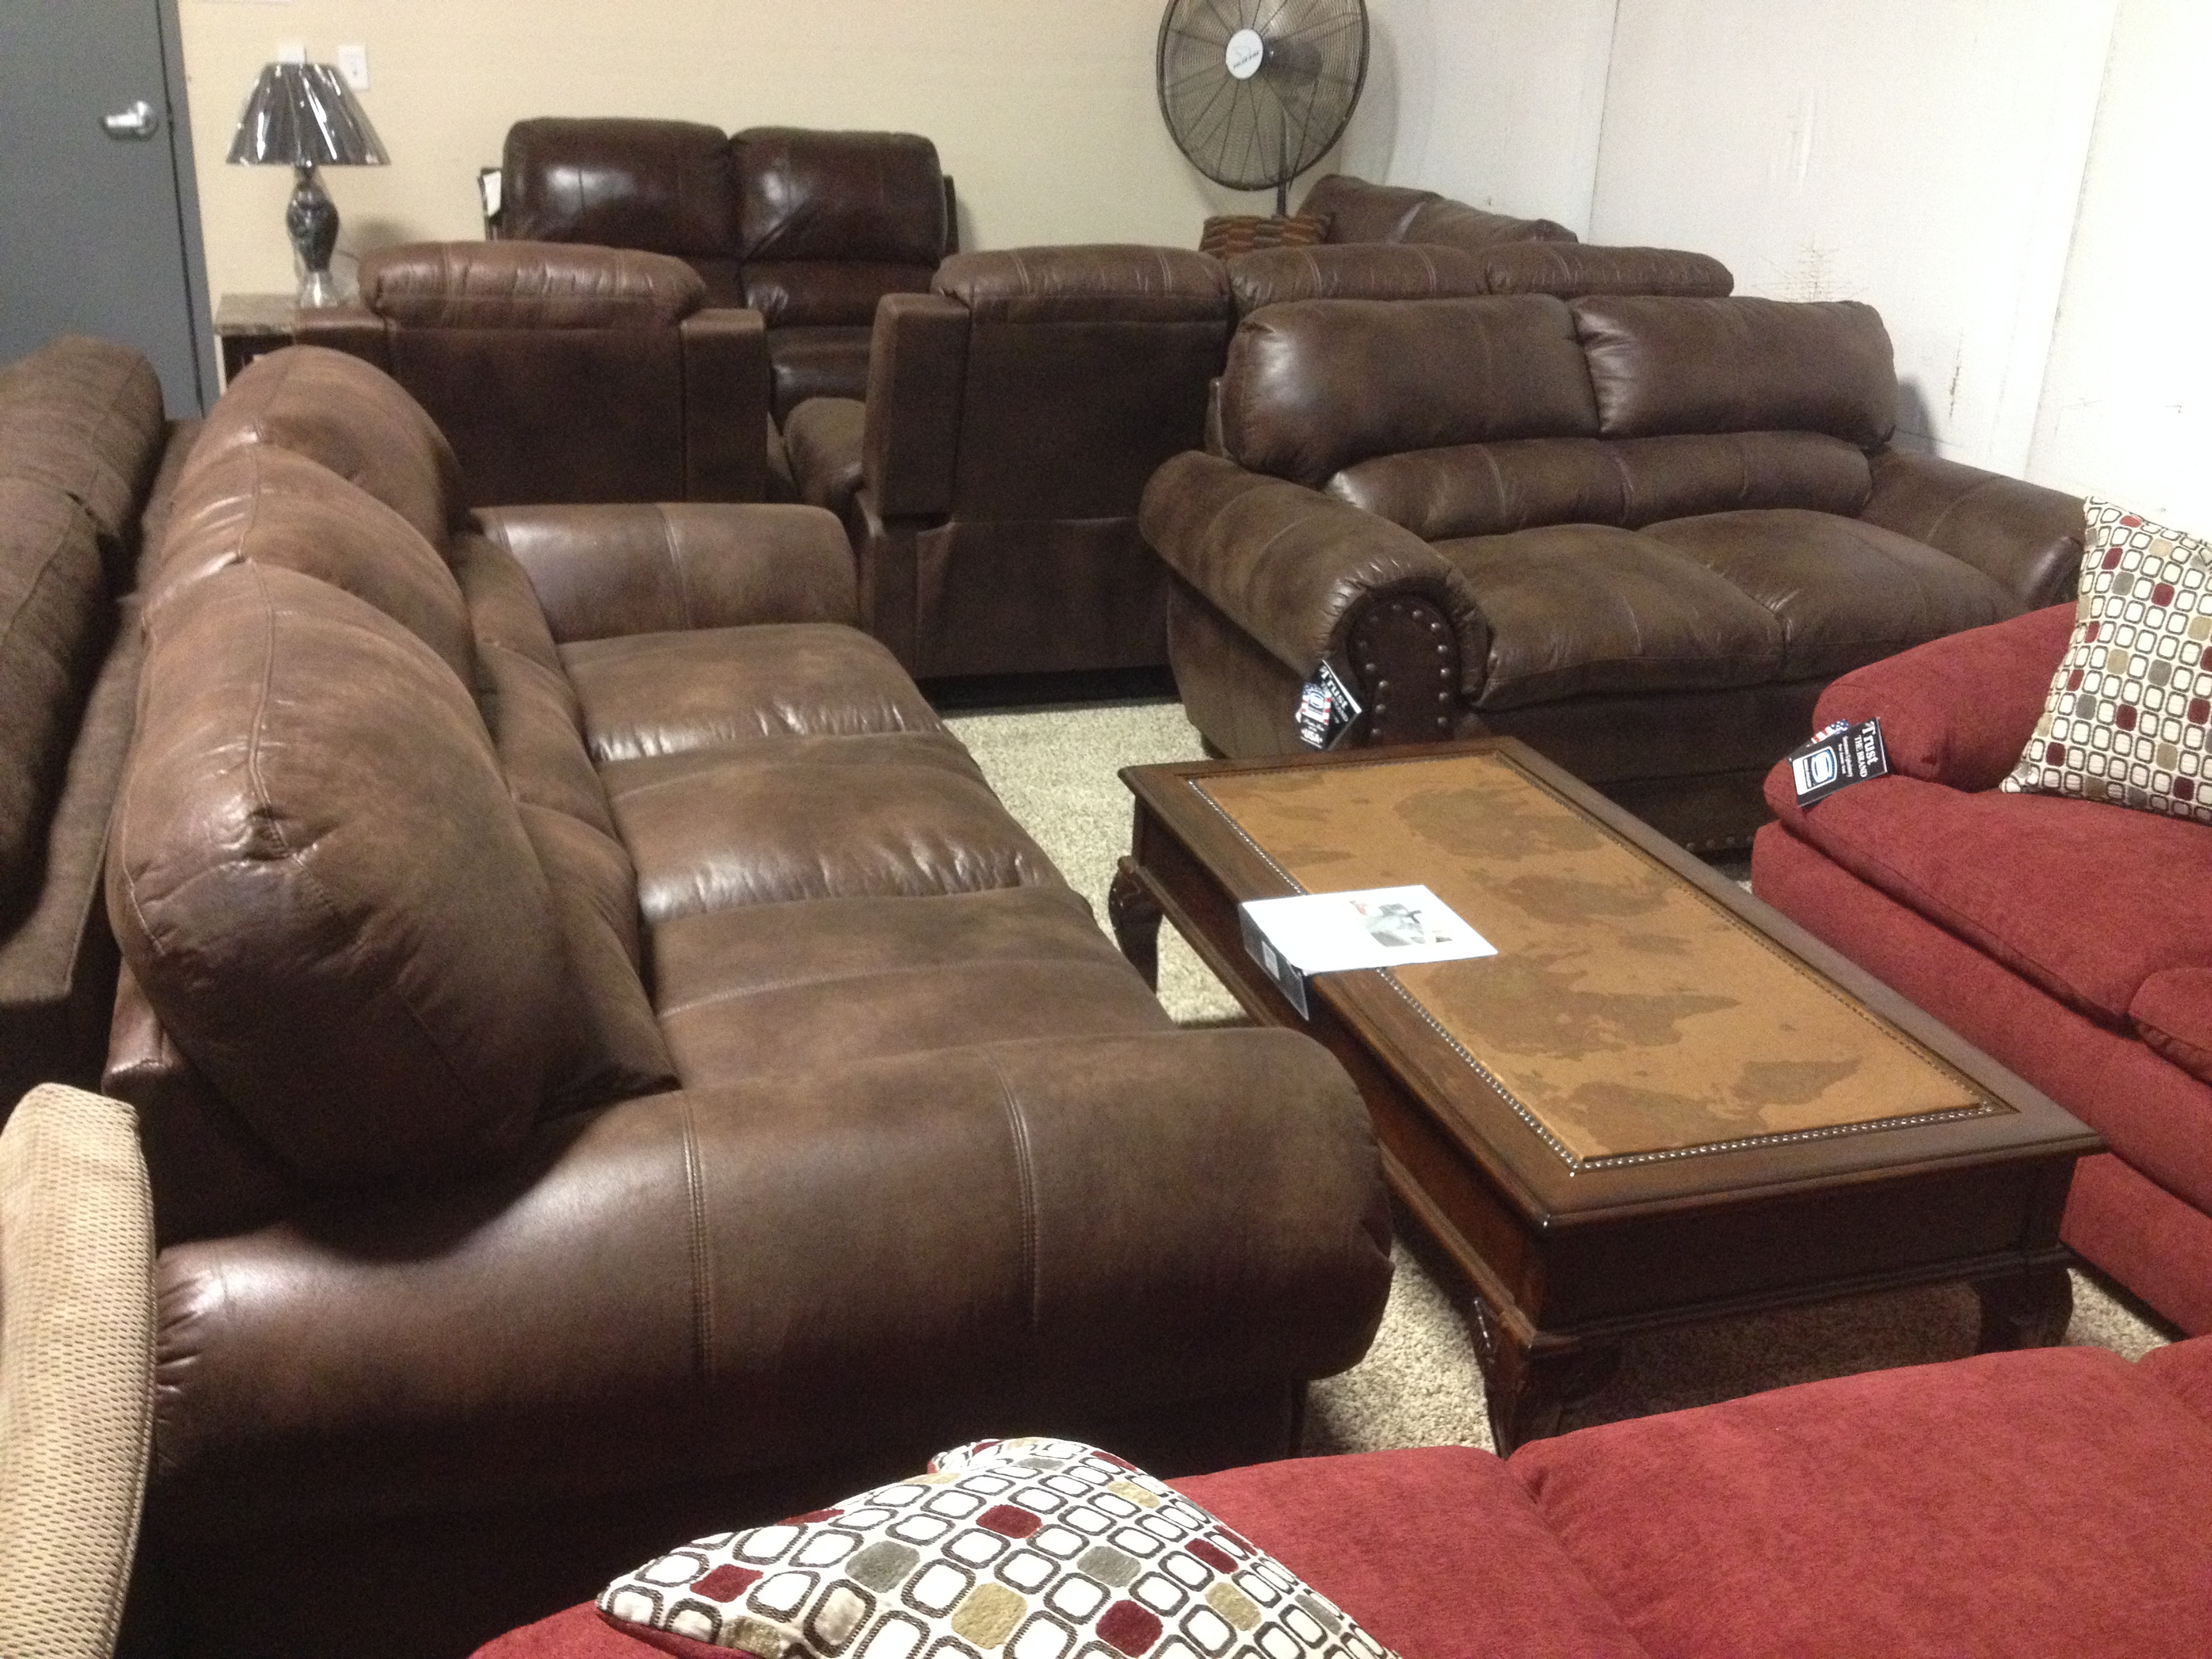 2015 09 18 QS Simmons U0026 Warranty Pix 047 . We Have Other Fine Living Room  Sets ...